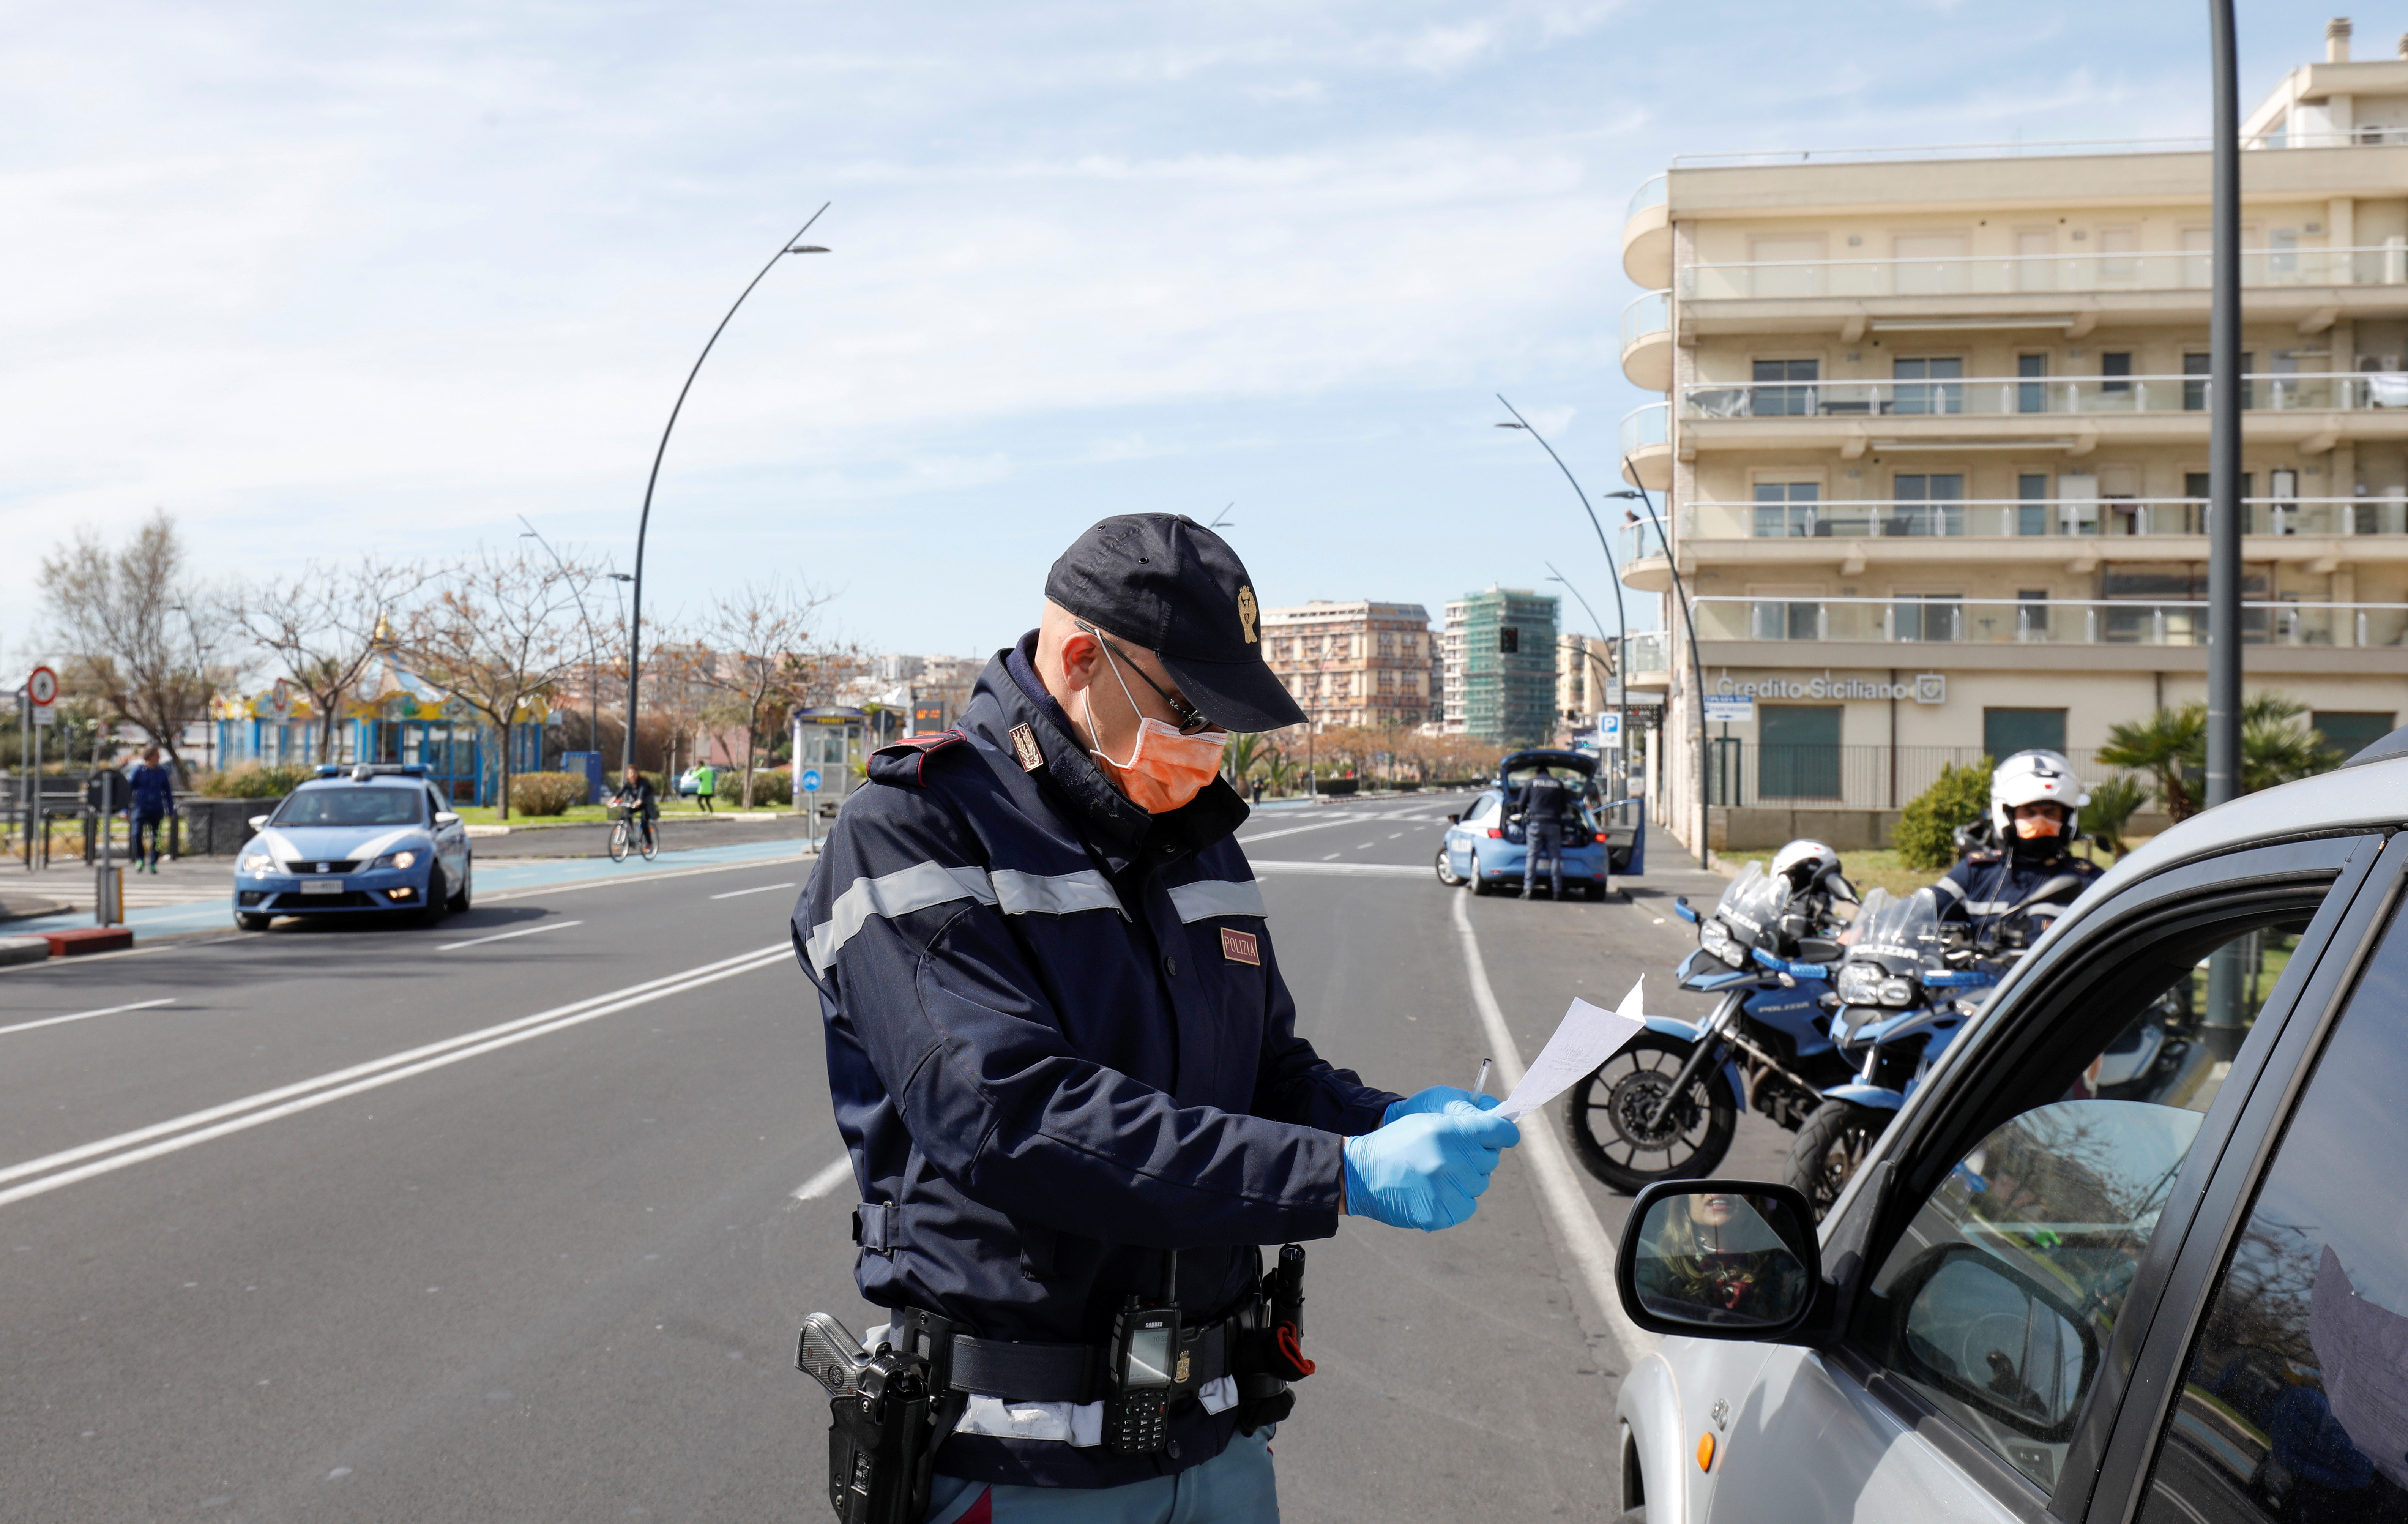 A police officer wearing a protective face mask controls travel documents allowing to leave a home, as the Italian government continues restrictive movement measures to combat the coronavirus outbreak, in Catania, Italy March 14, 2020. REUTERS/Antonio Parrinello - RC2MJF9OSB99